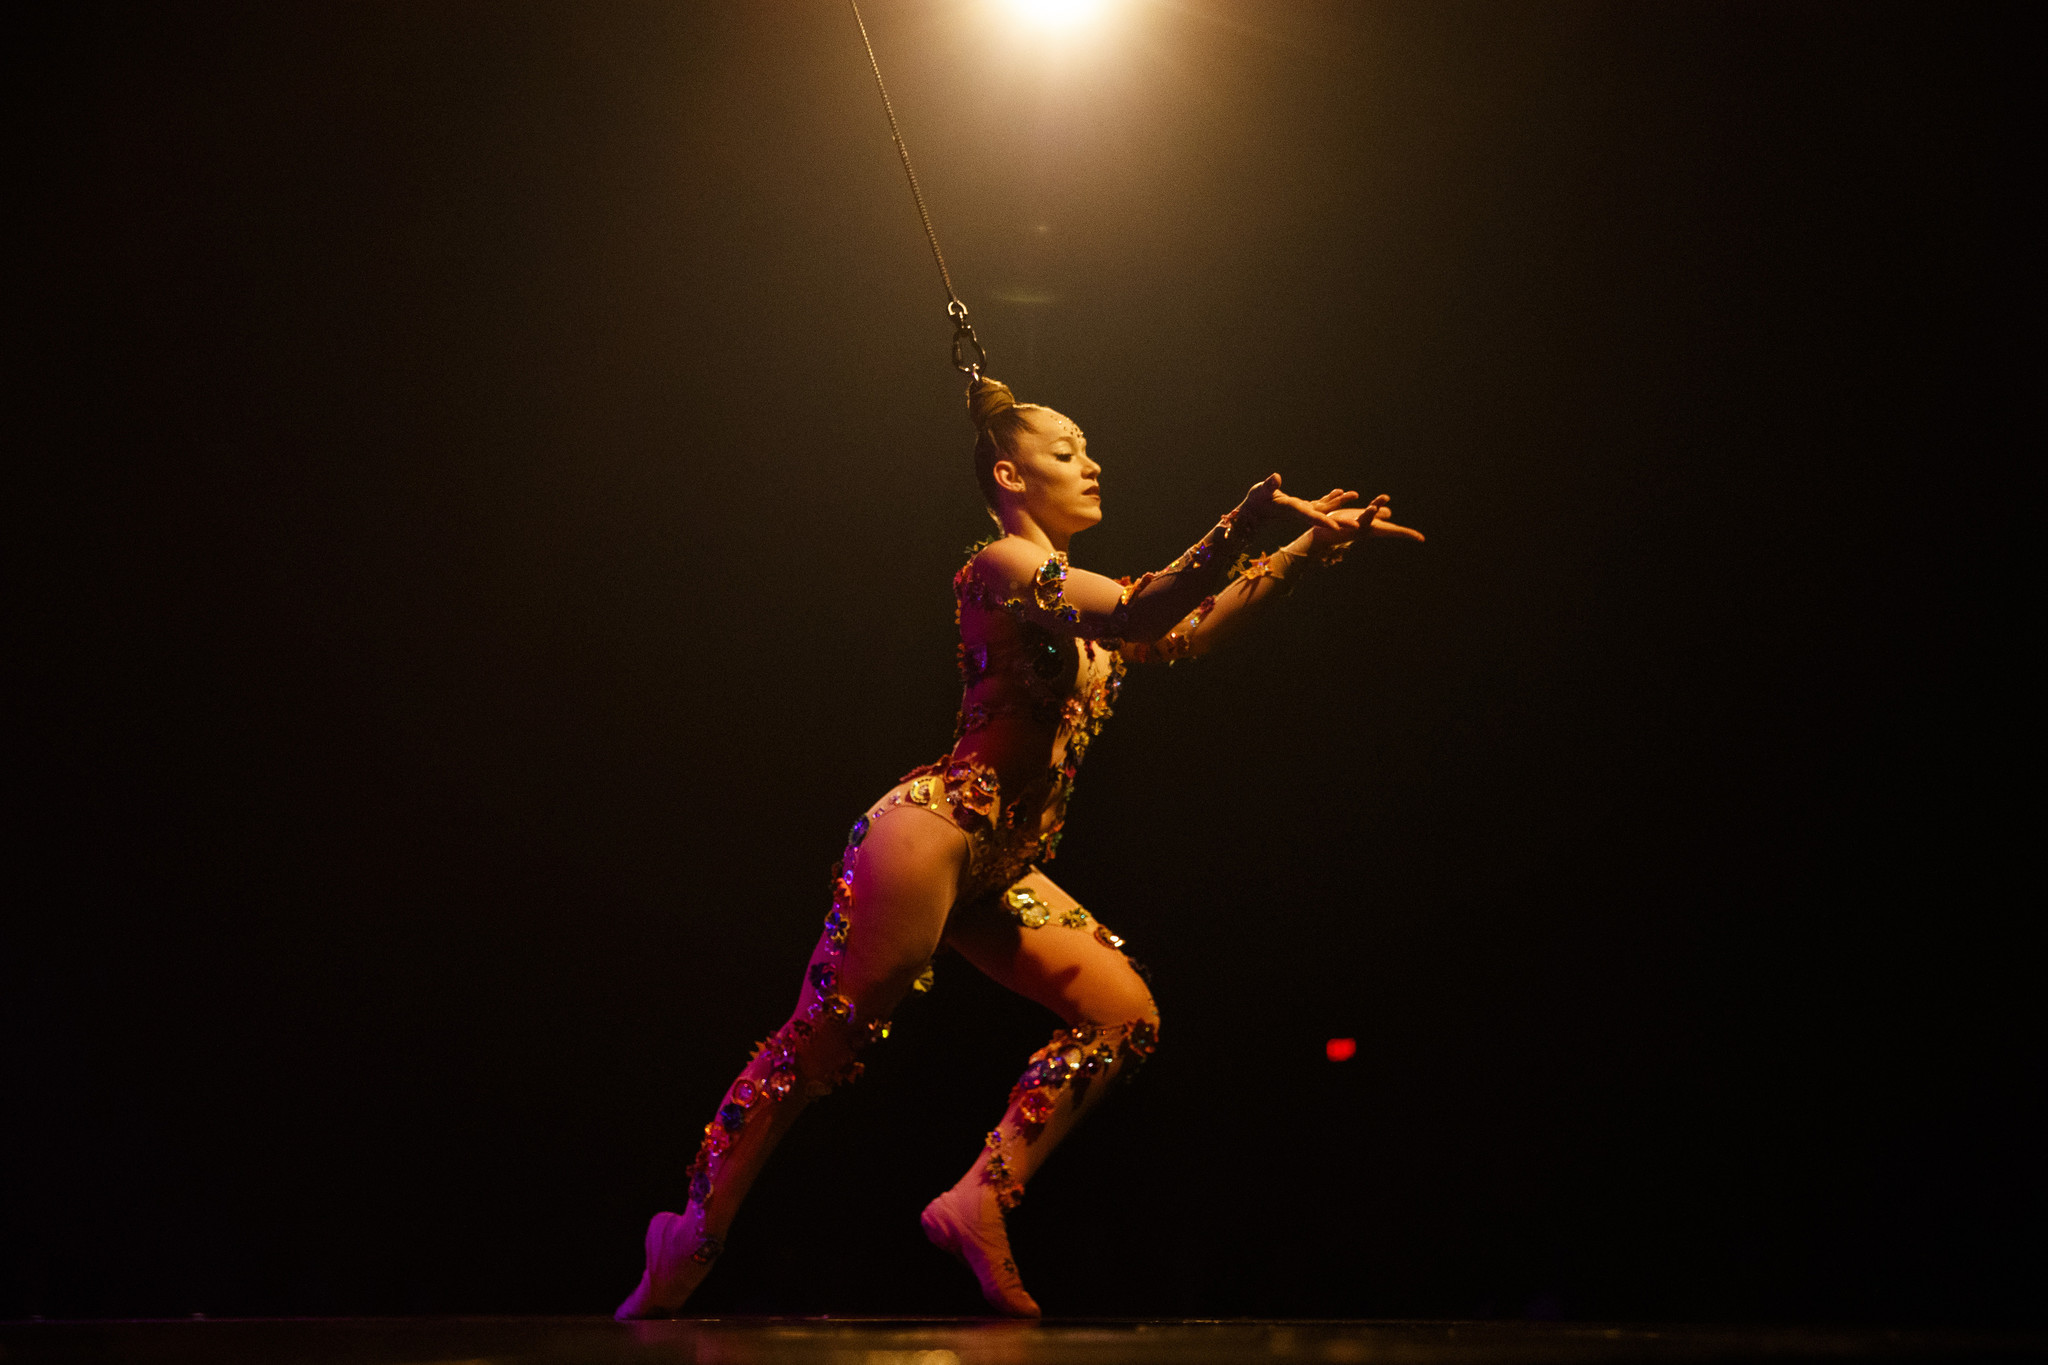 'Volta' by Cirque du Soleil is now at Soldier Field with all the old excitement